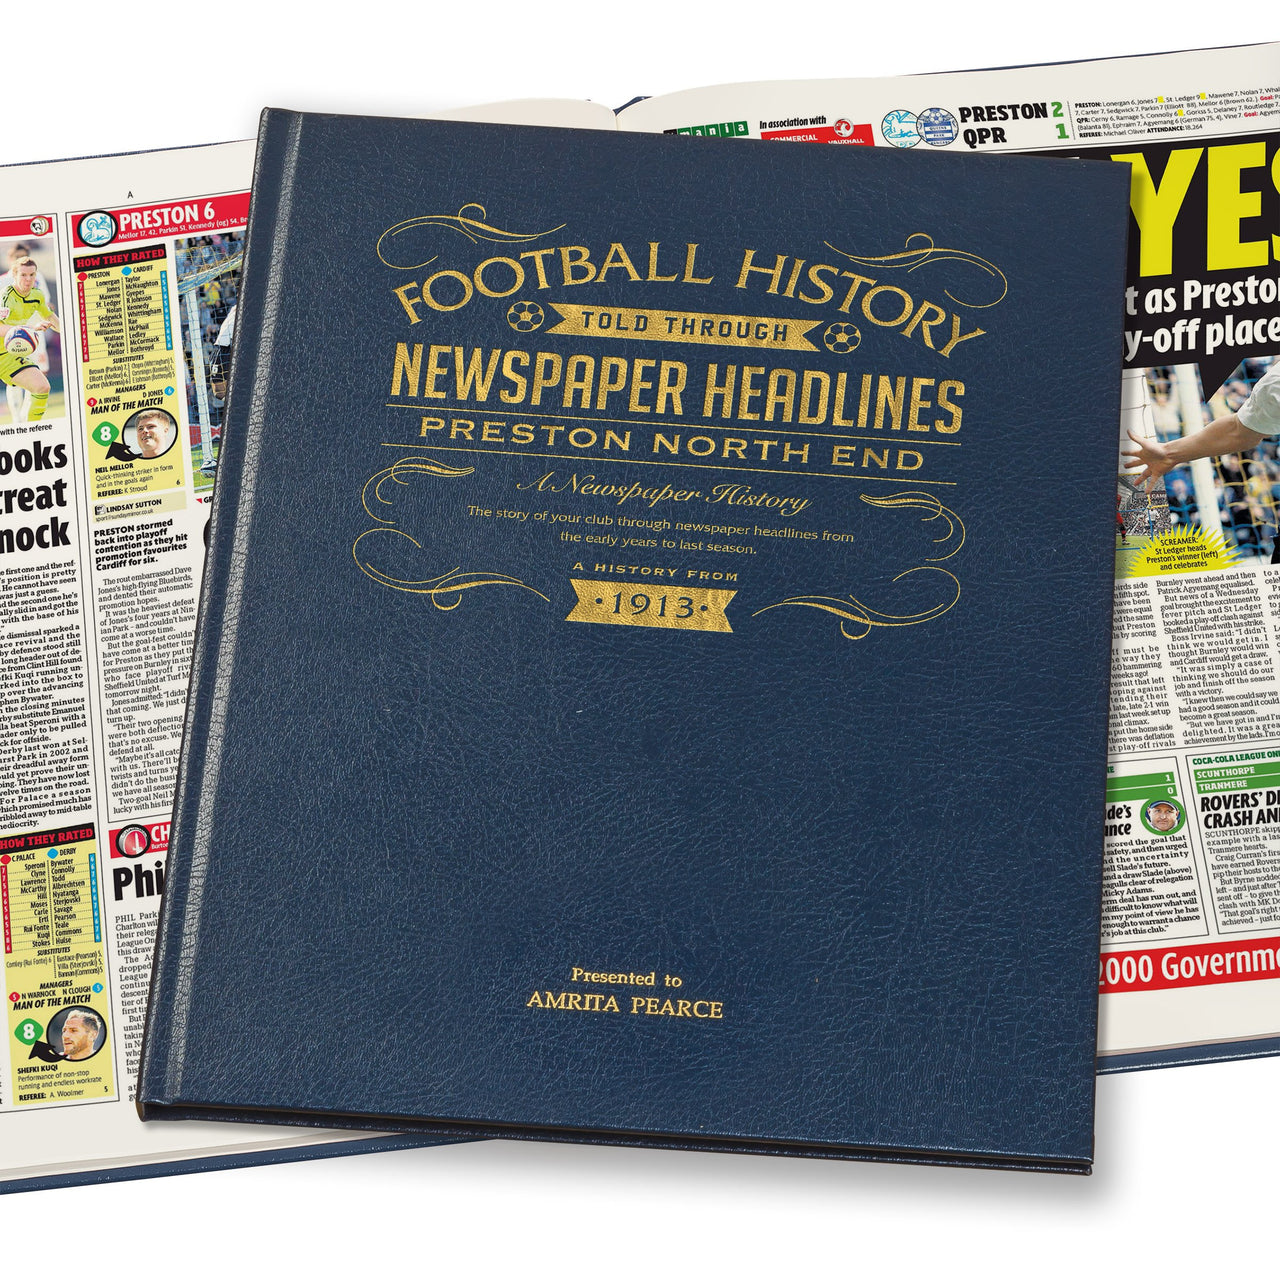 Preston Newspaper History Book - Leather Blue Cover